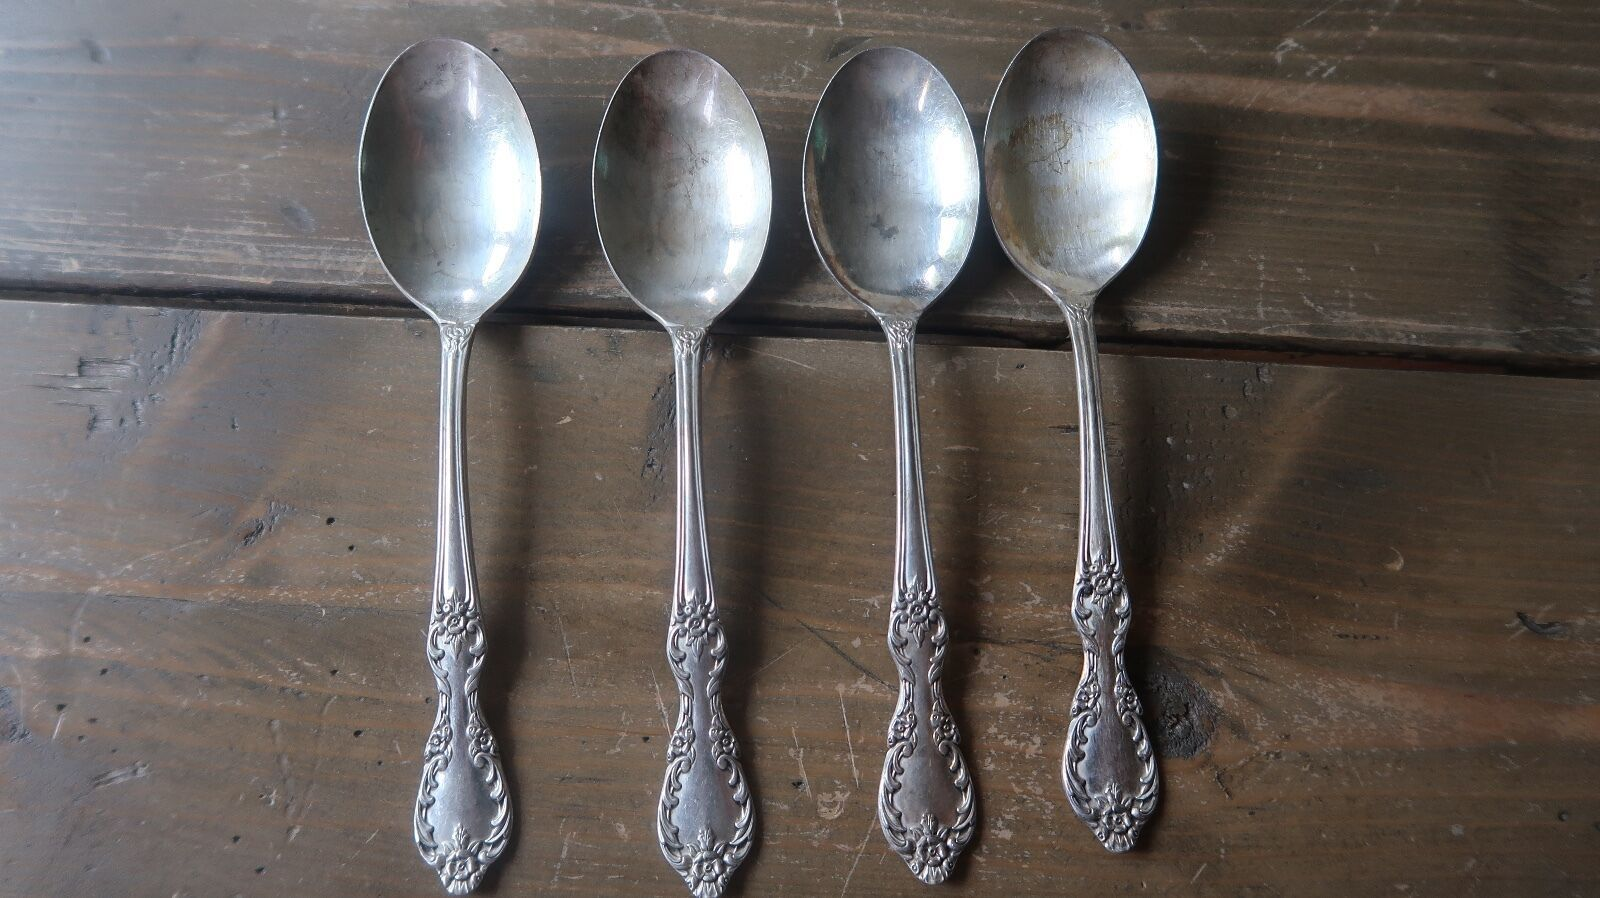 Primary image for Vintage Rogers Grand Elegance Soup Spoon 6.75 inches Set of 4